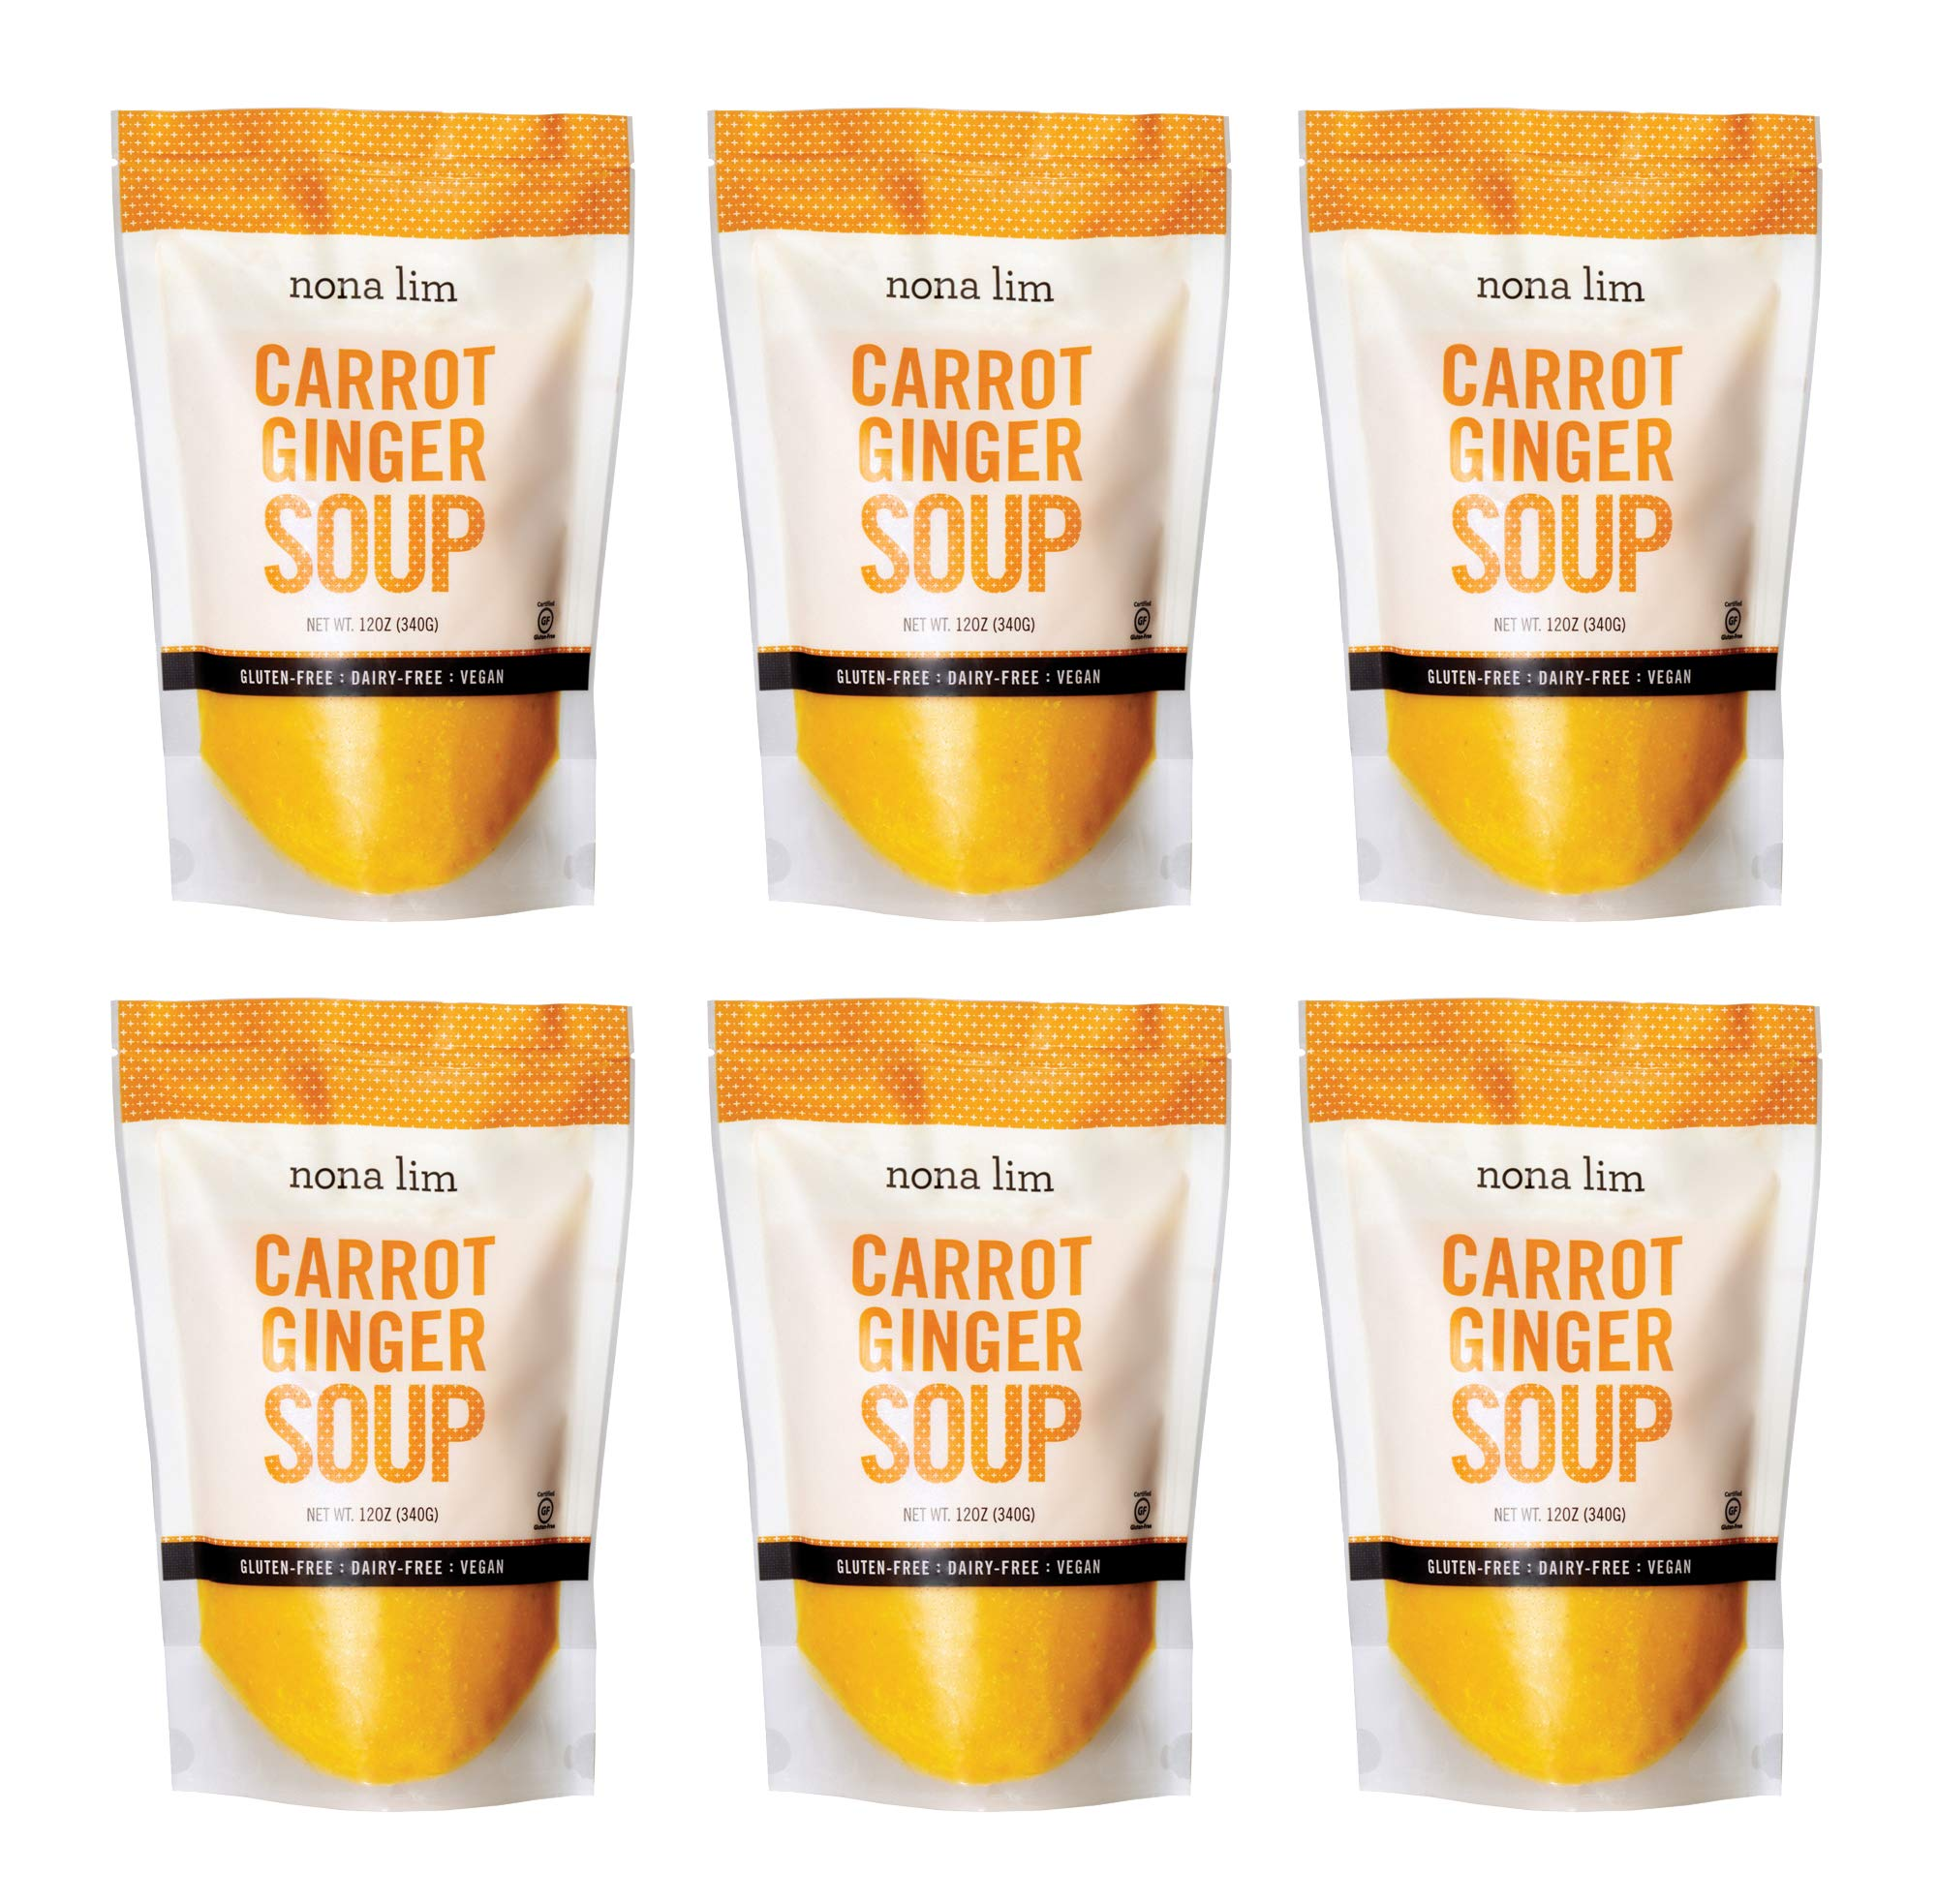 Nona Lim Carrot Ginger Soup - Vegan, Gluten Free, Dairy Free, Non GMO (12 oz., 6 Count) - Packaging May Vary by Nona Lim